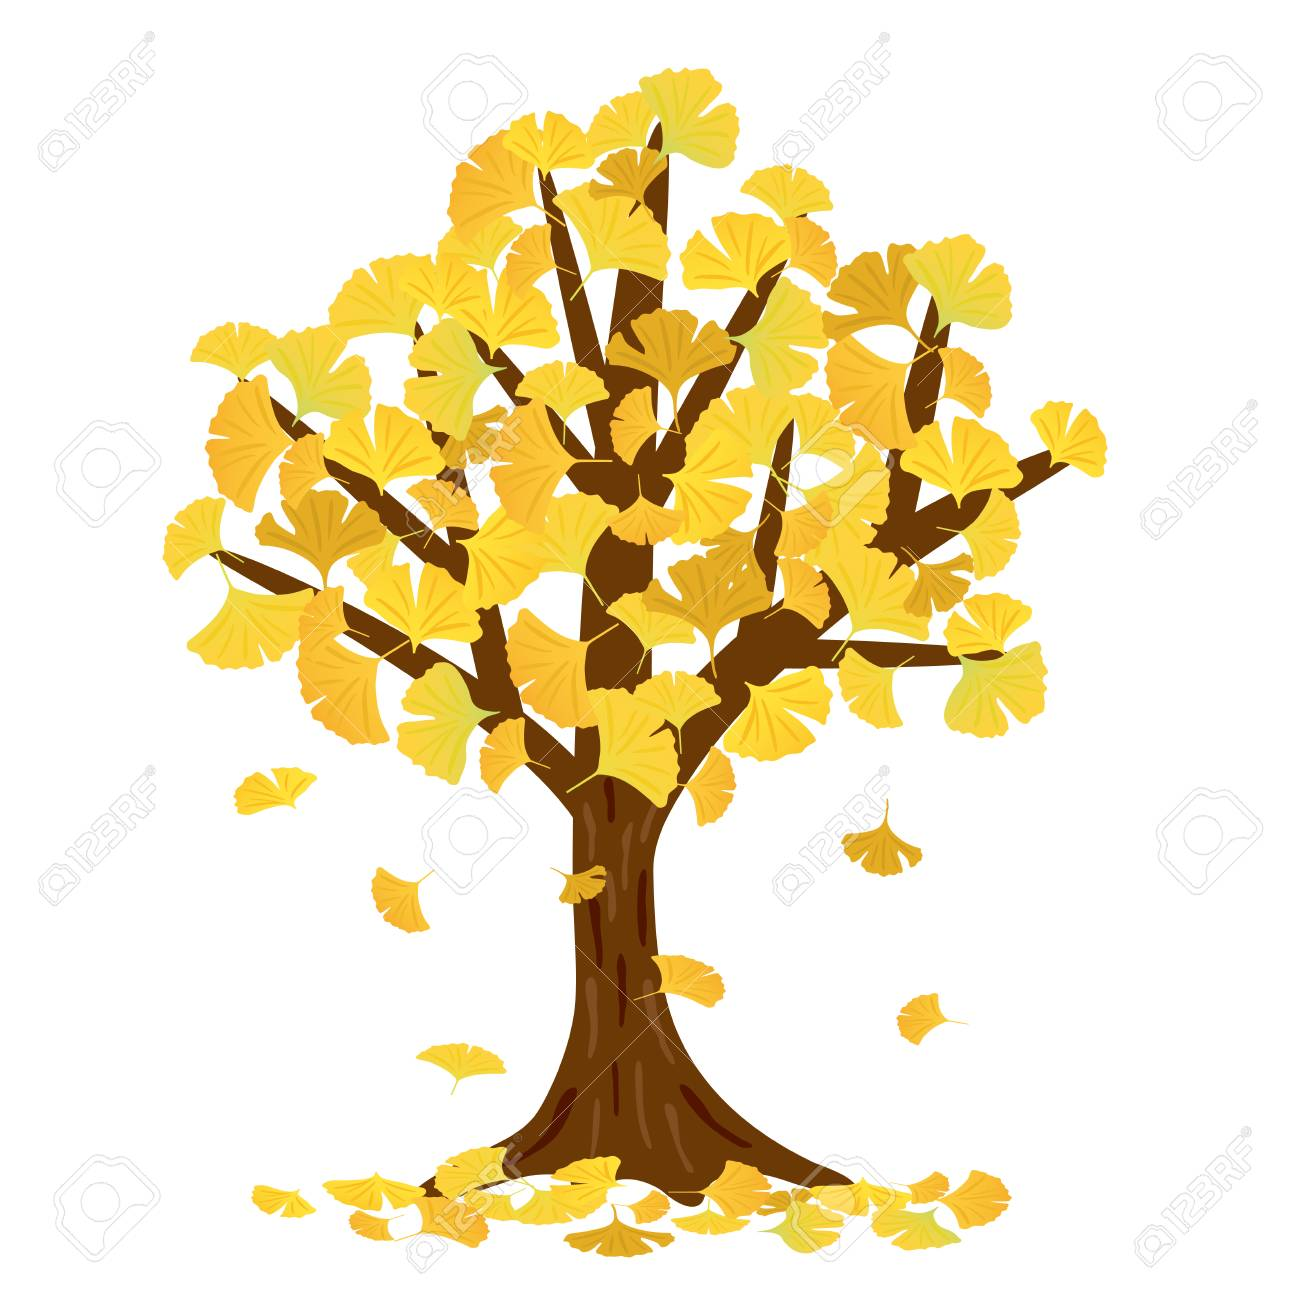 Ginkgo Tree Vector Illustration Royalty Free Cliparts, Vectors, And ...